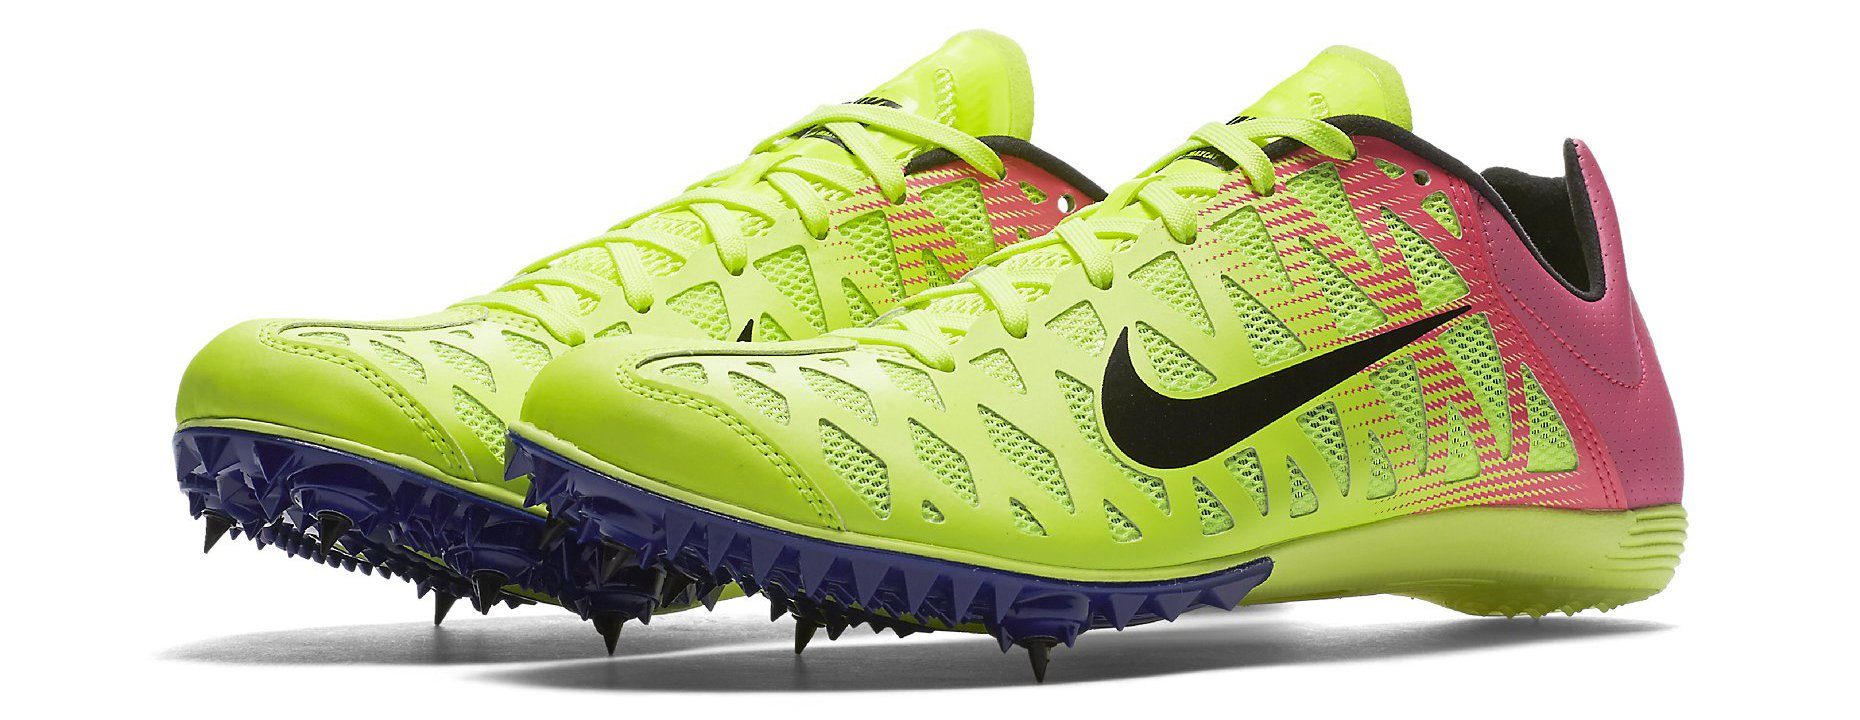 new product dc61c d6ad9 ... Track shoesSpikes Nike ZOOM MAXCAT 4 OC ...